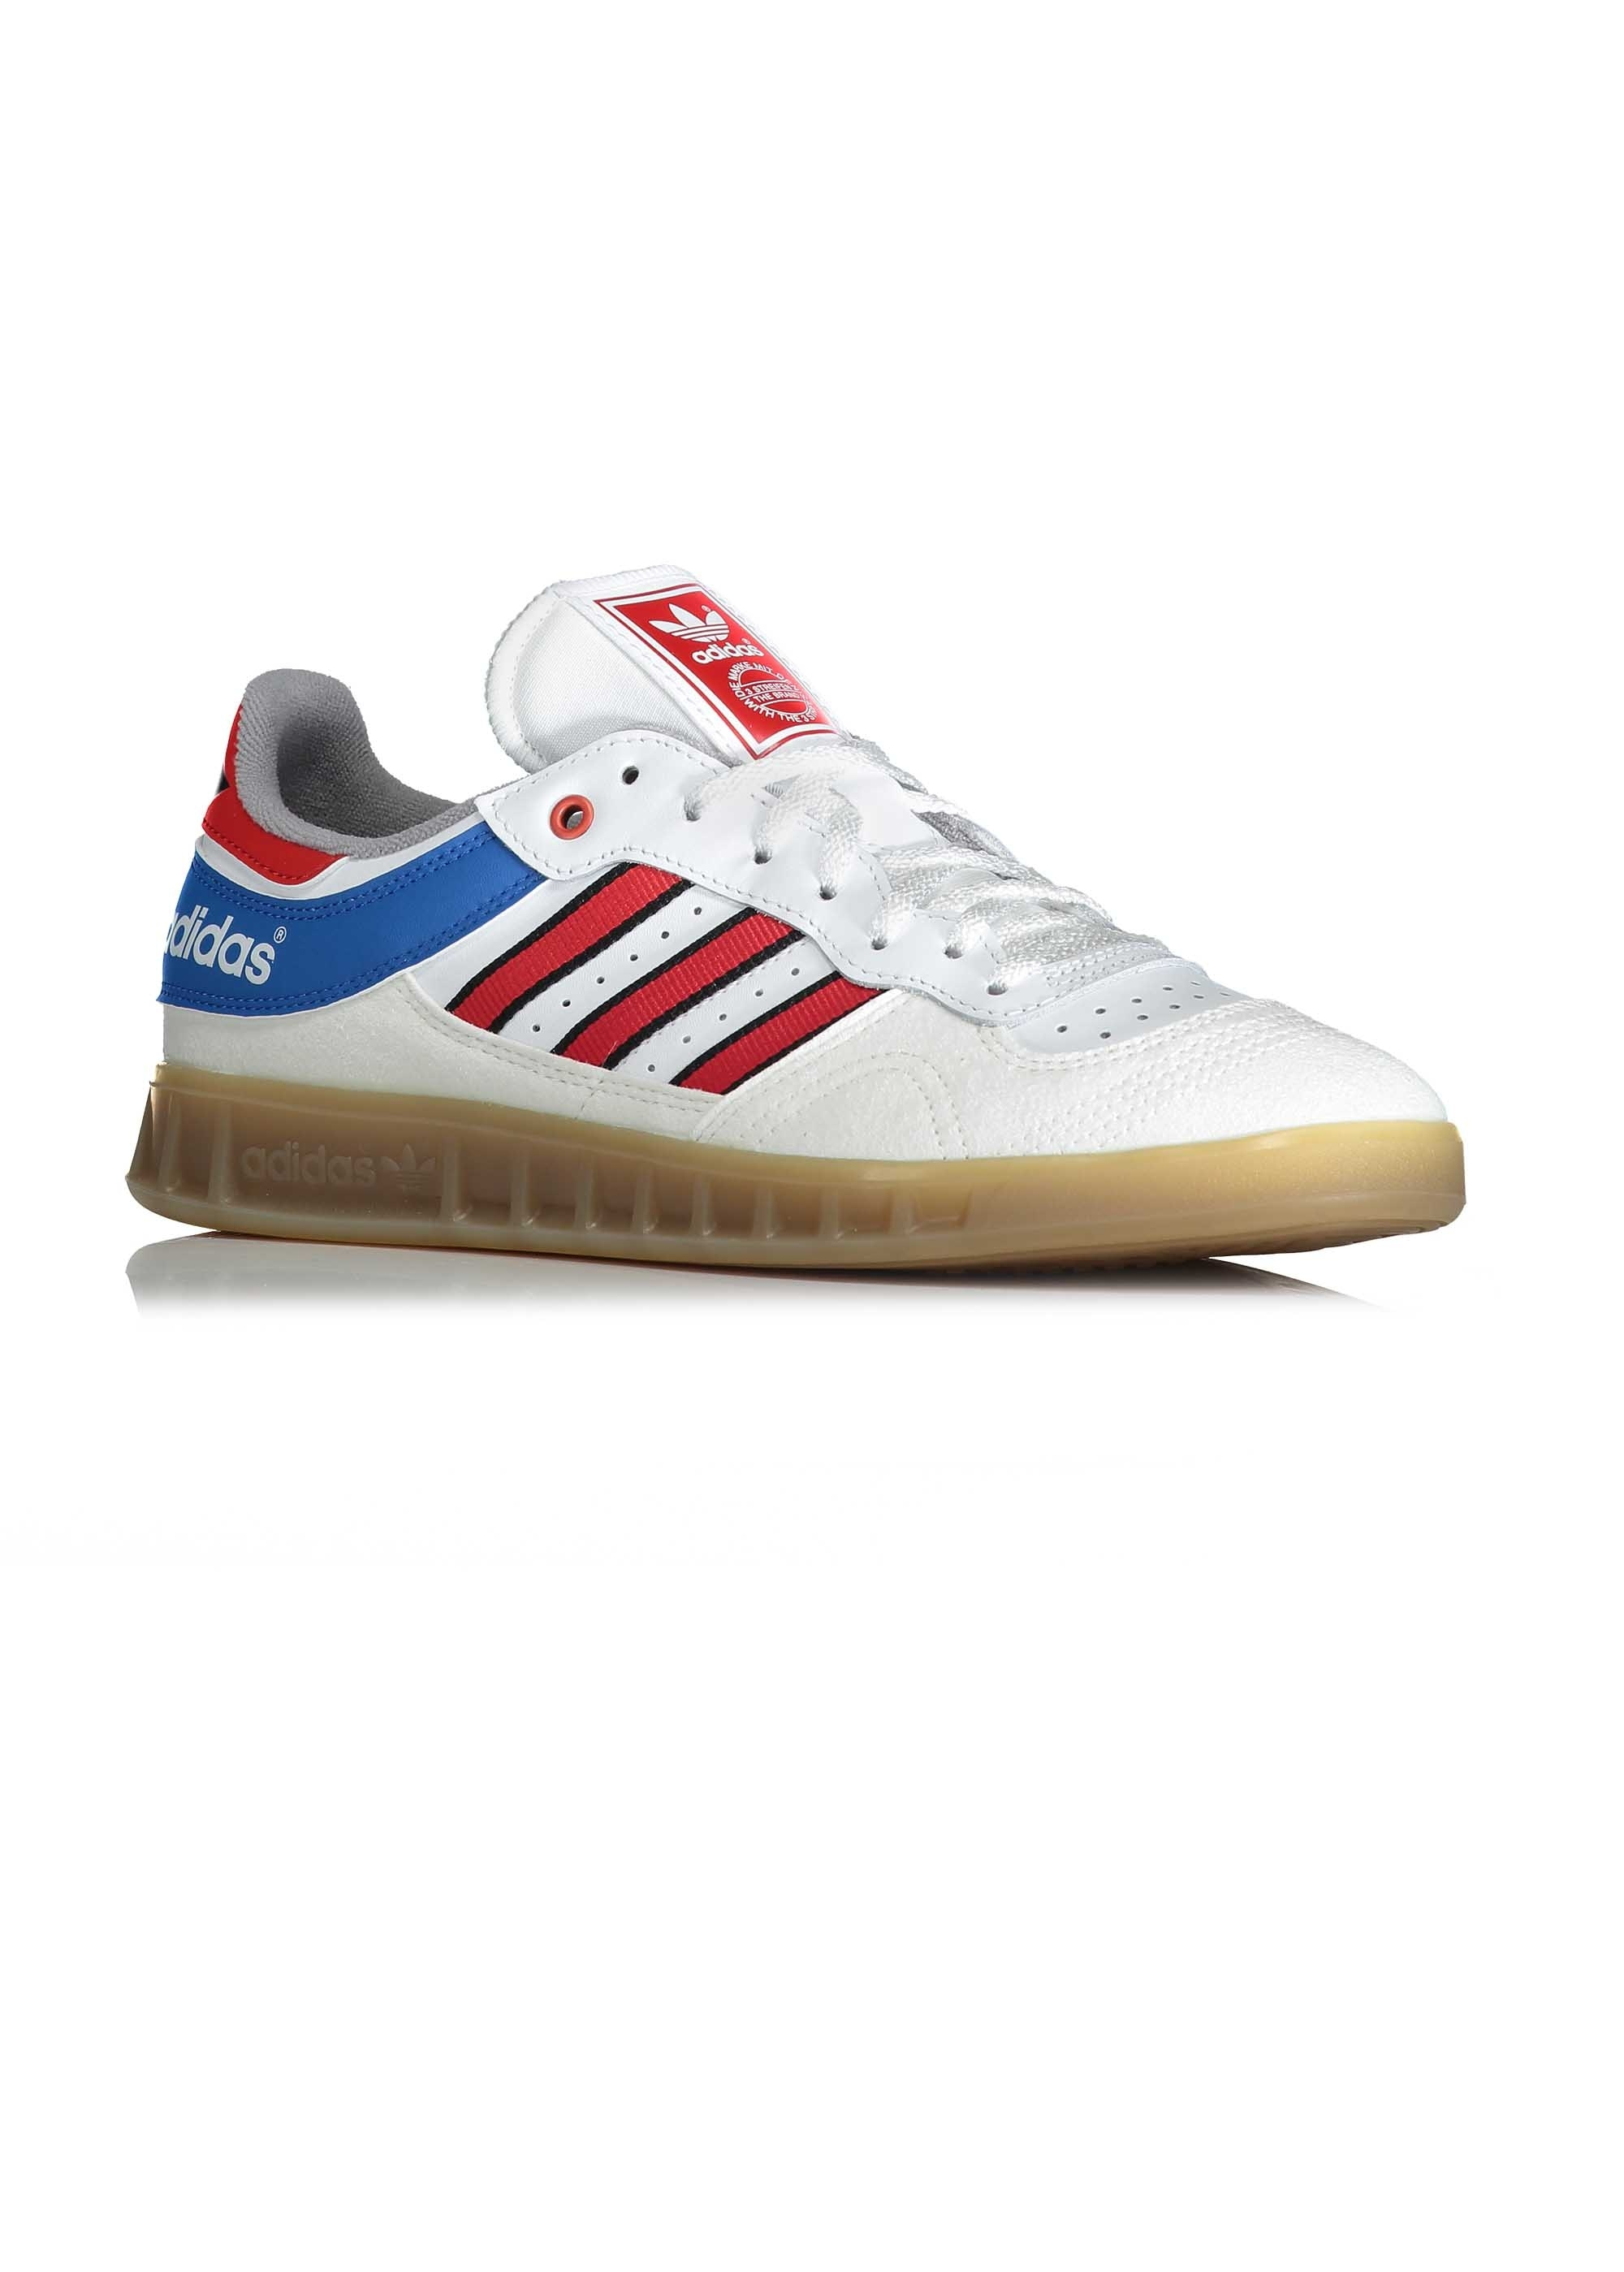 adidas Originals Footwear Handball Top White Red Royal